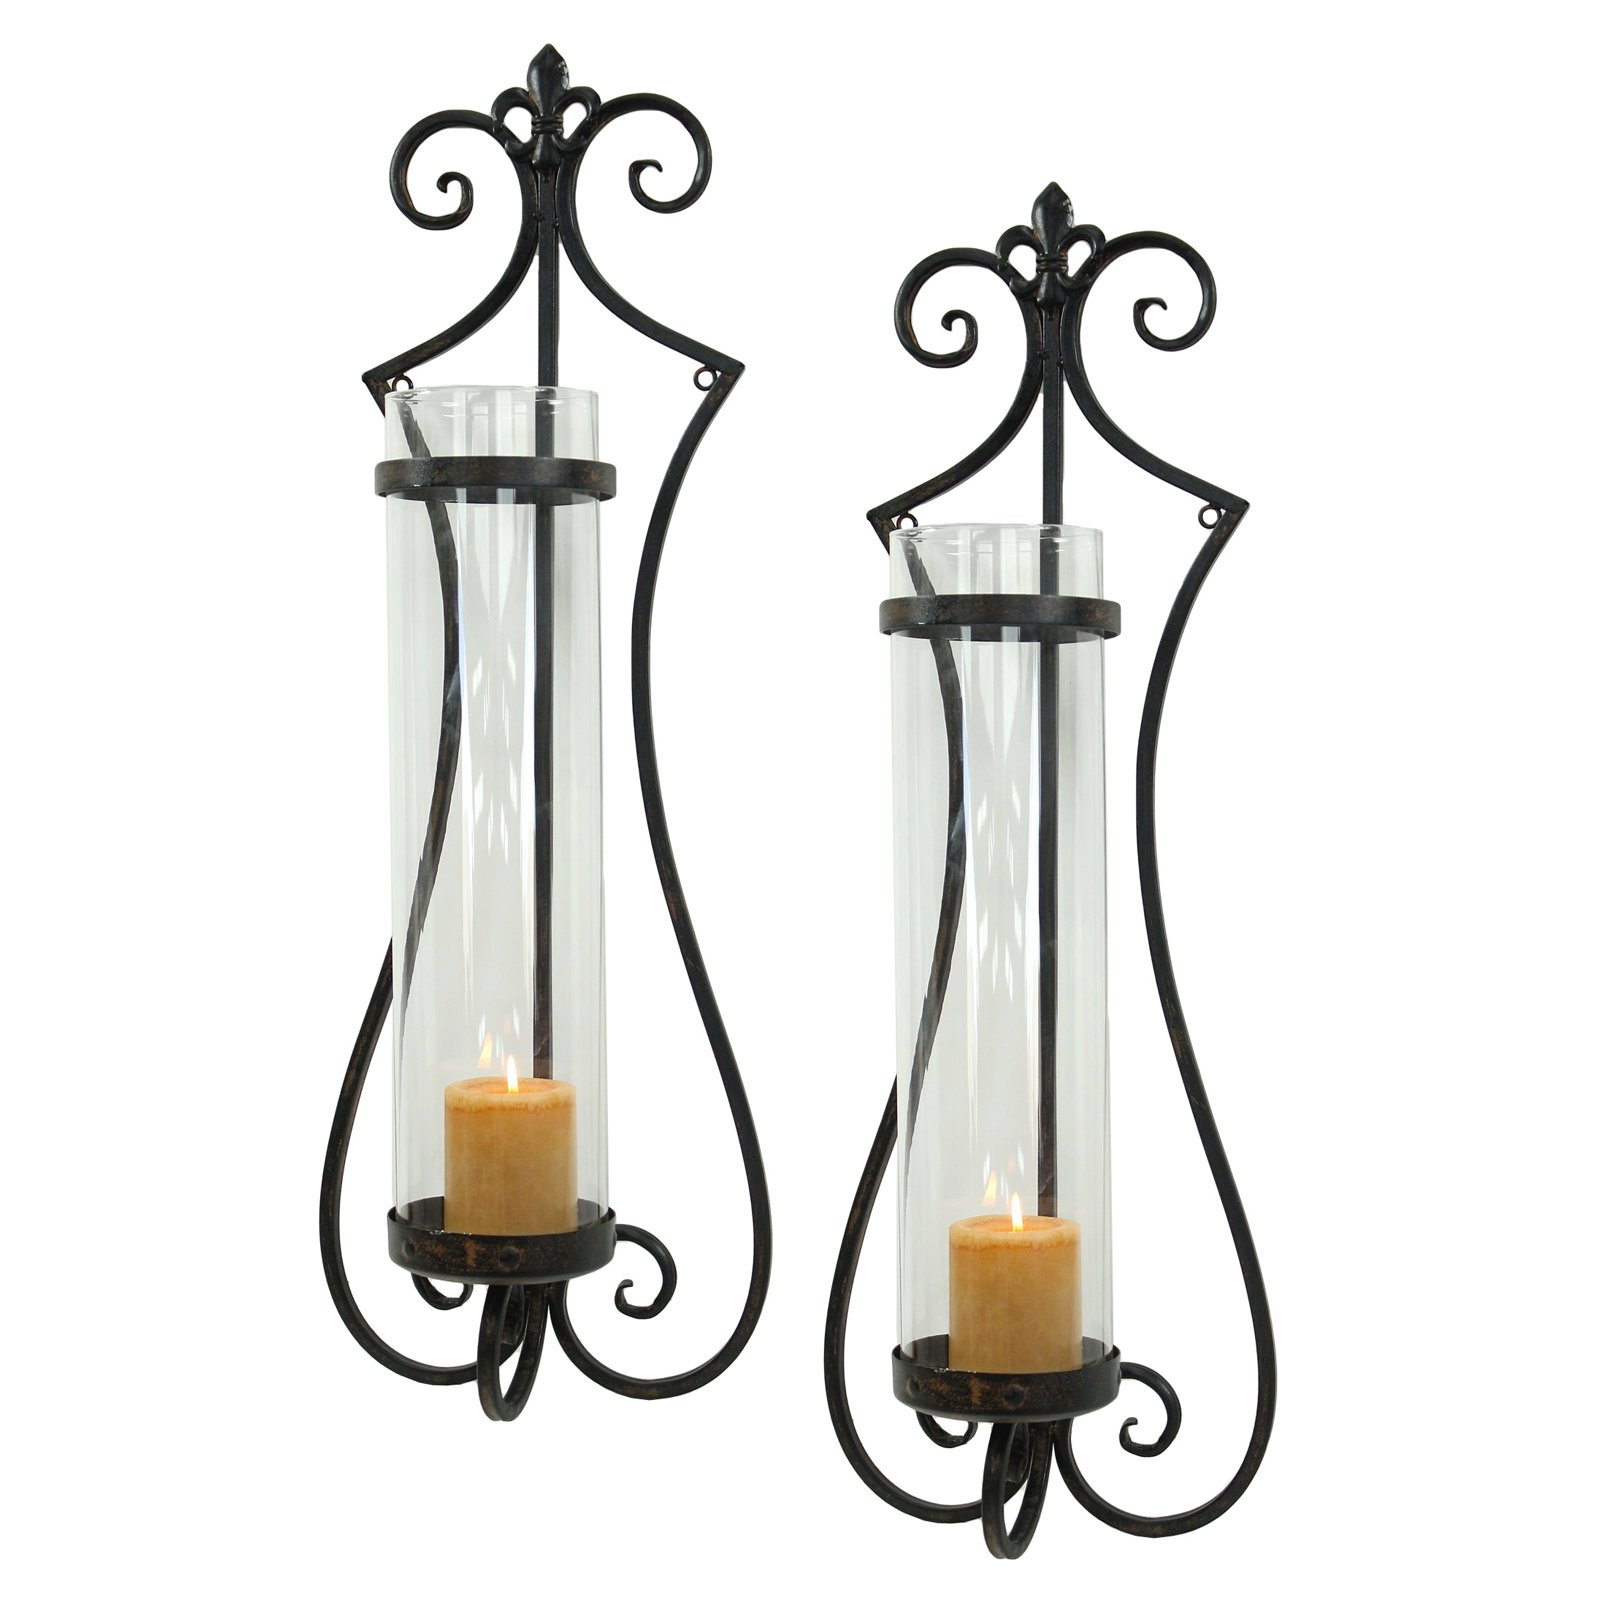 Aspire Home Accents Rhodes Candle Wall Sconce - Set of 2